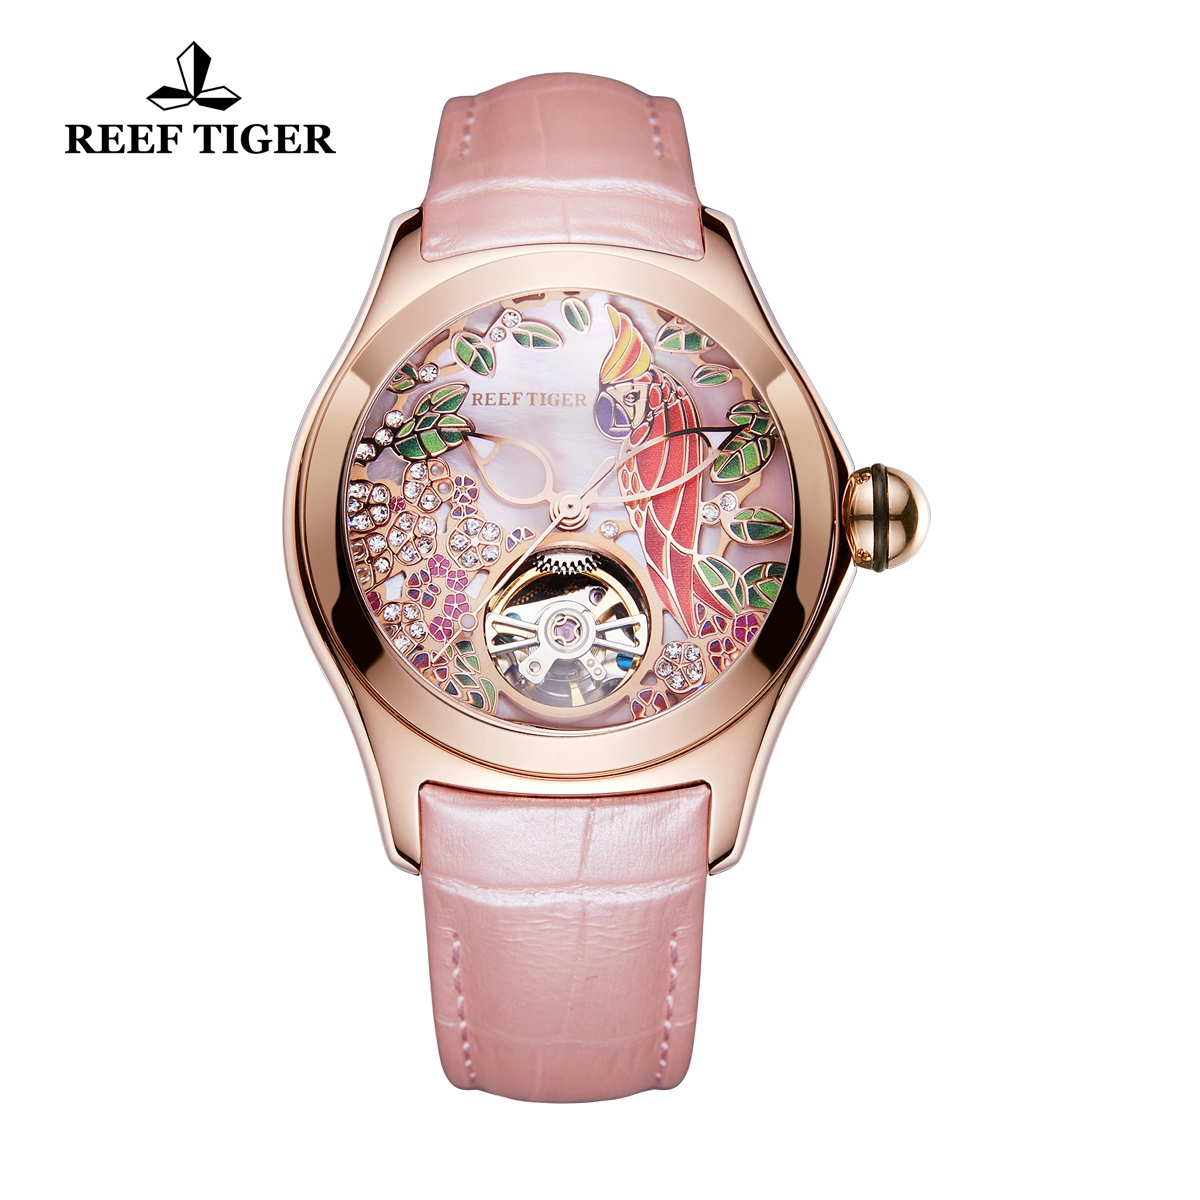 Reef Tiger Aurora Parrot Casual Watches Women Automatic Watch Rose Gold Case Leather Strap RGA7105-PPP